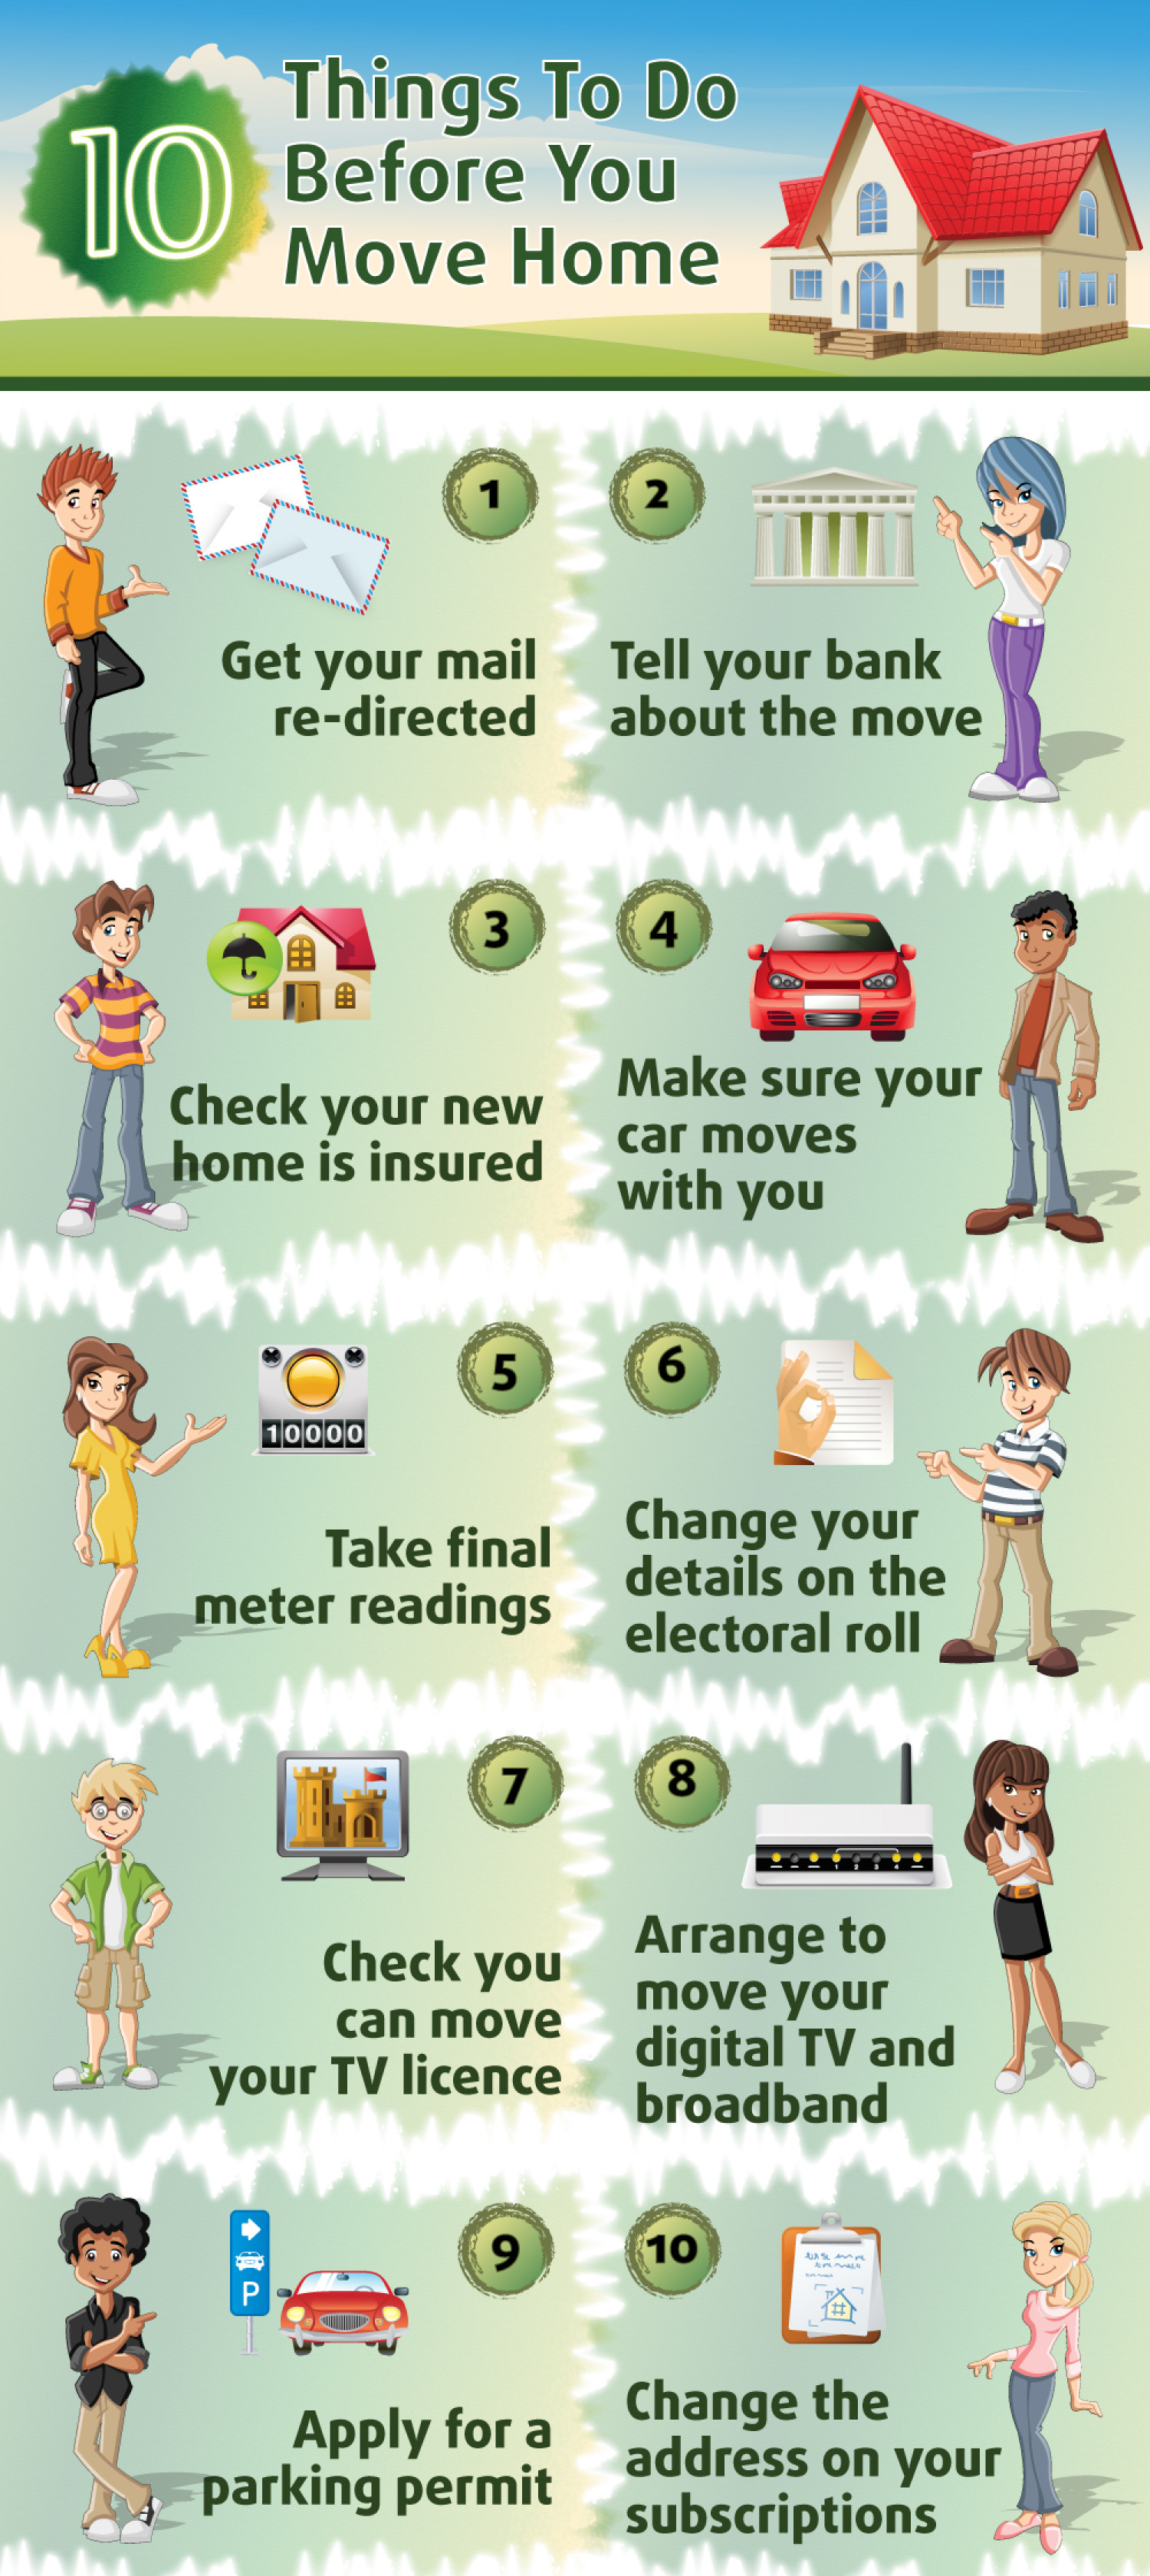 10 Things To Do Before You Move Home Infographic